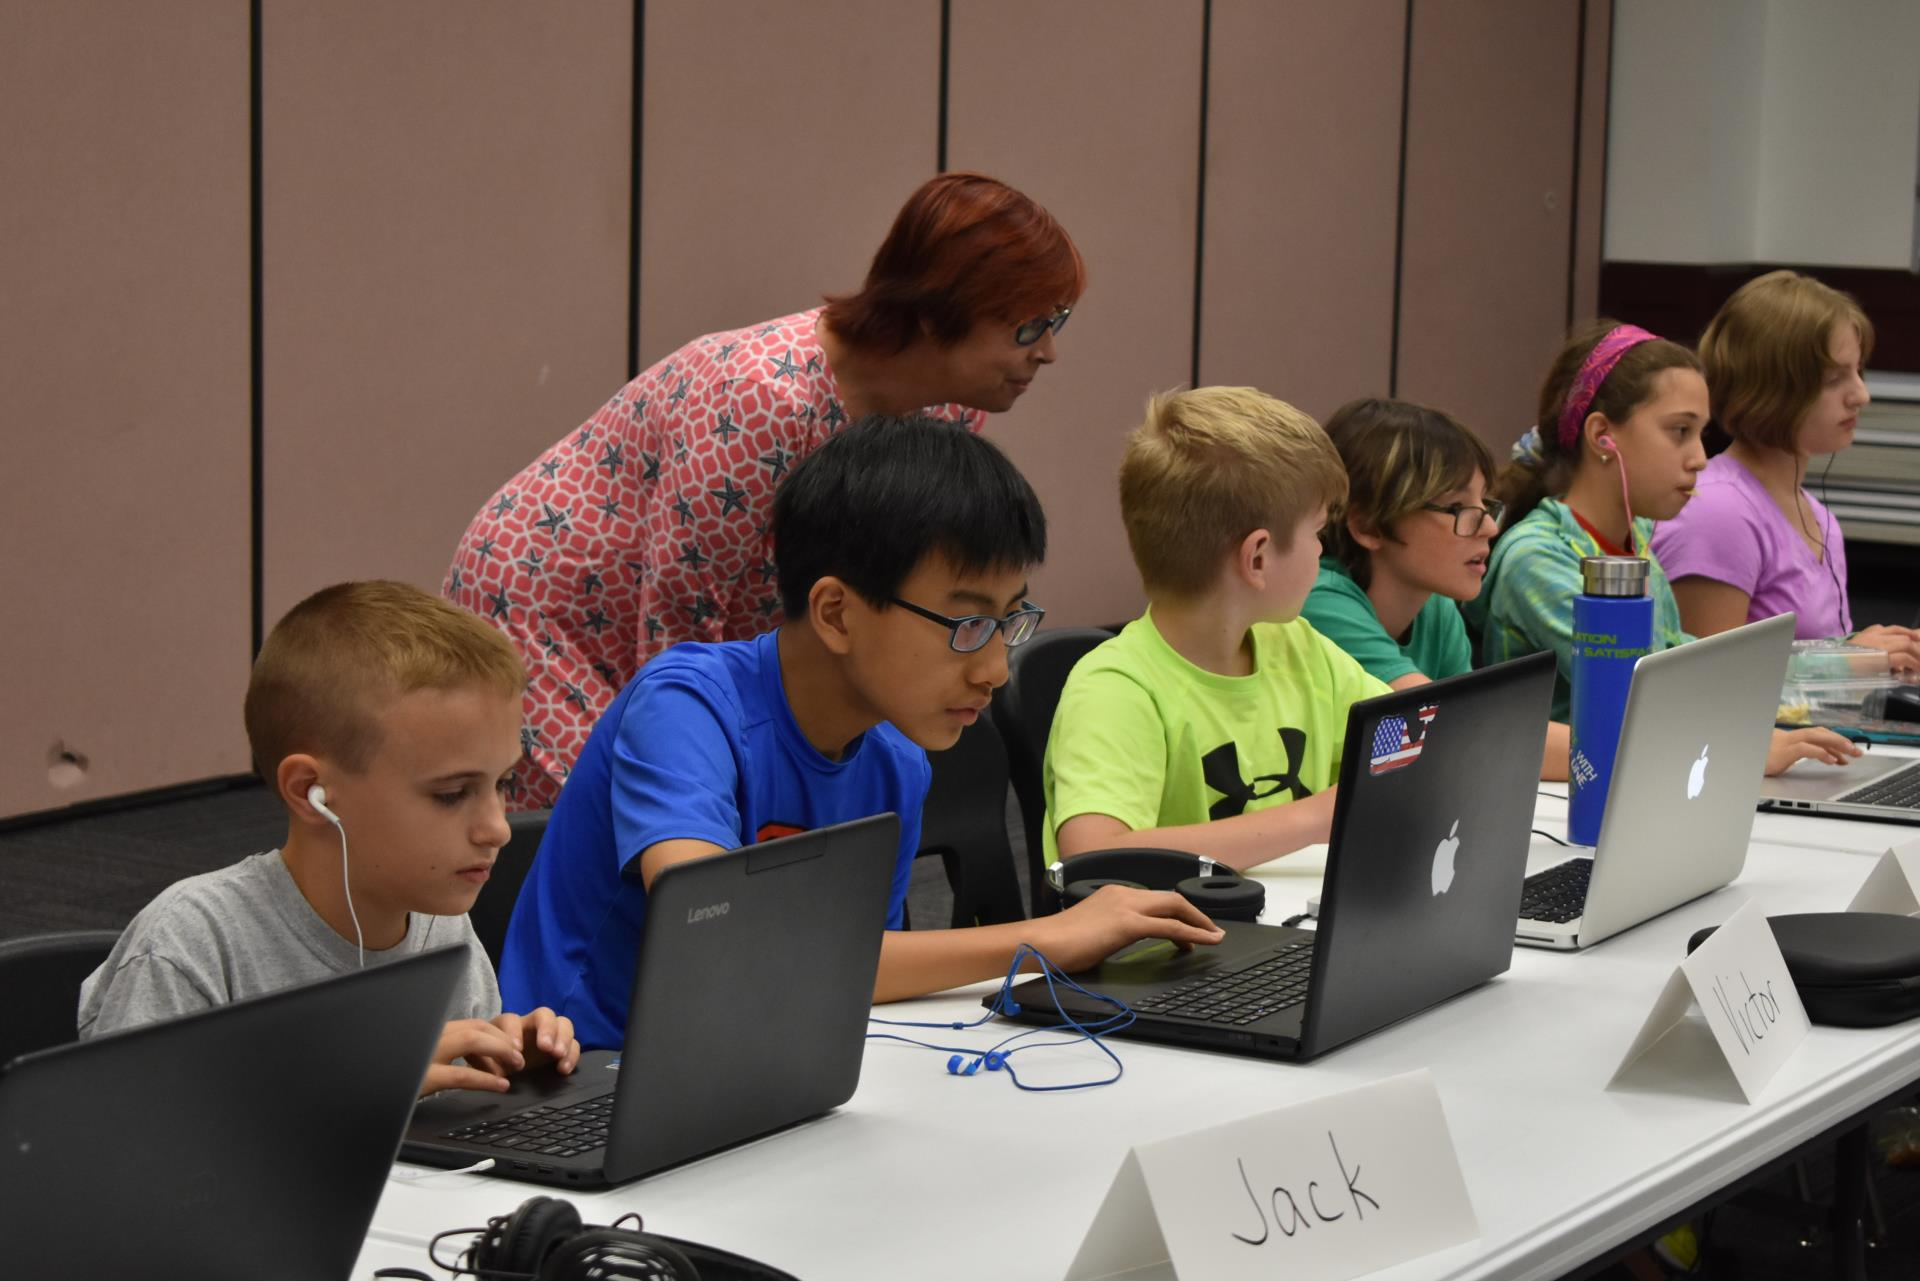 Learn to Program Camp is an intro to programming and making Javascript games.